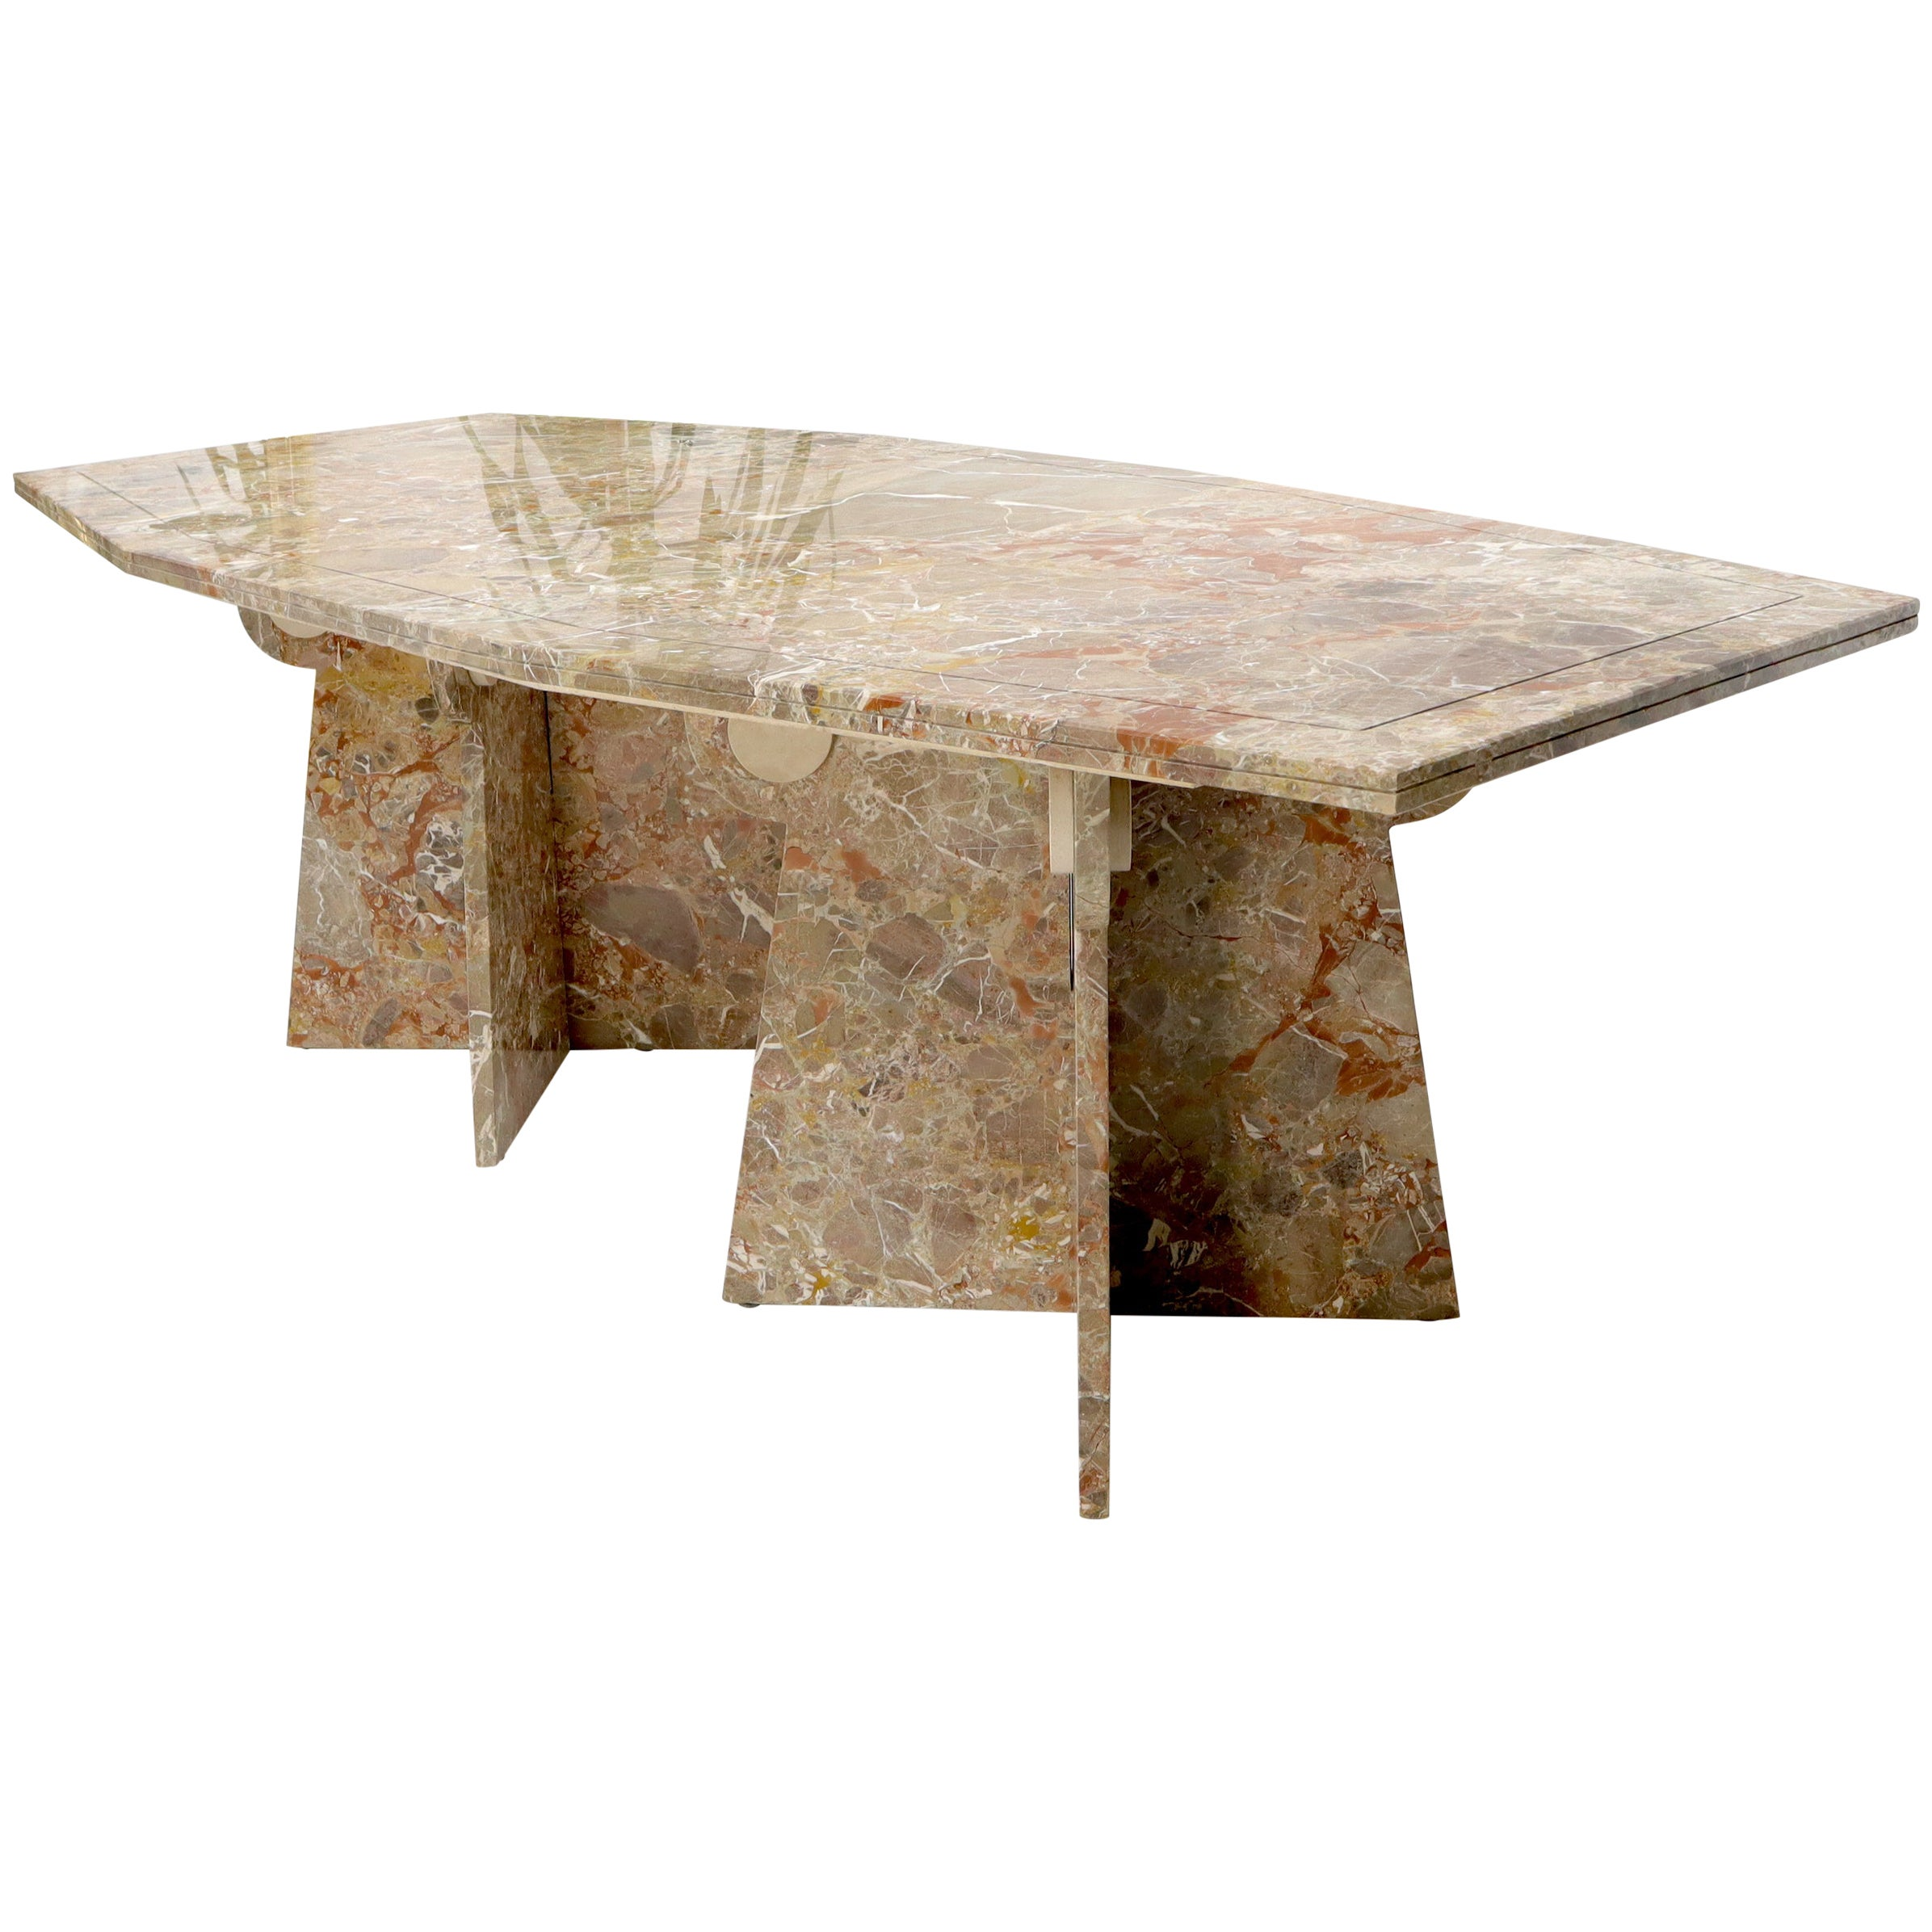 Large Marble Boat Shape Top Dining Conference Table on Cross Shape Bases